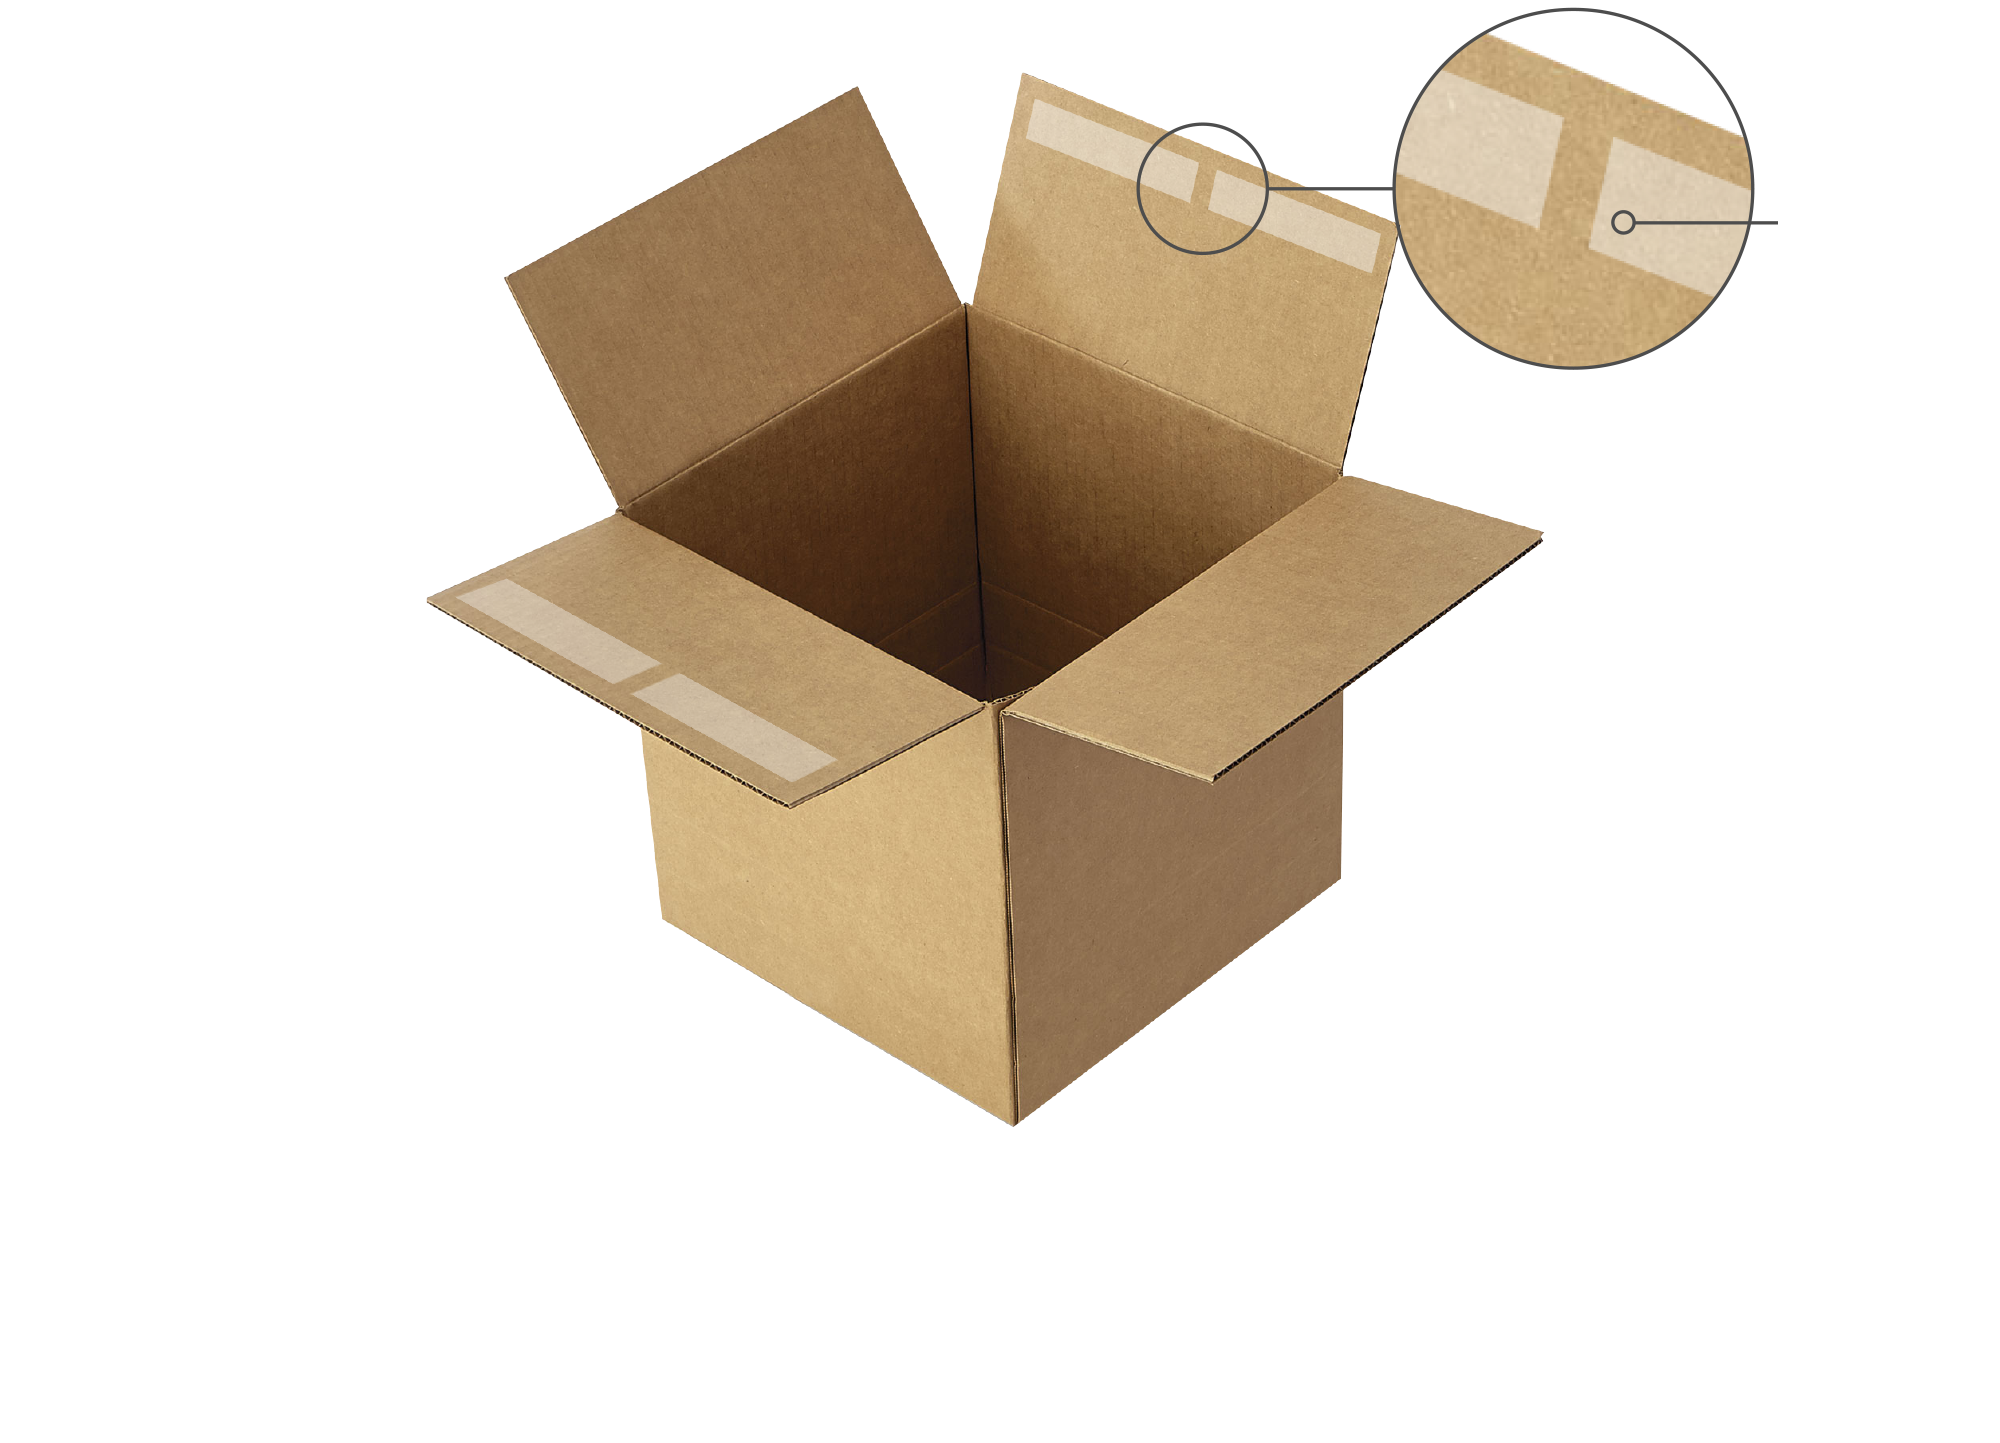 Seal cases and cartons. - Did we mention our case seal Adhesive Squares bond strongly with boxes? Super strong adhesion ensures everything stays in place. Nothing can break this bond!